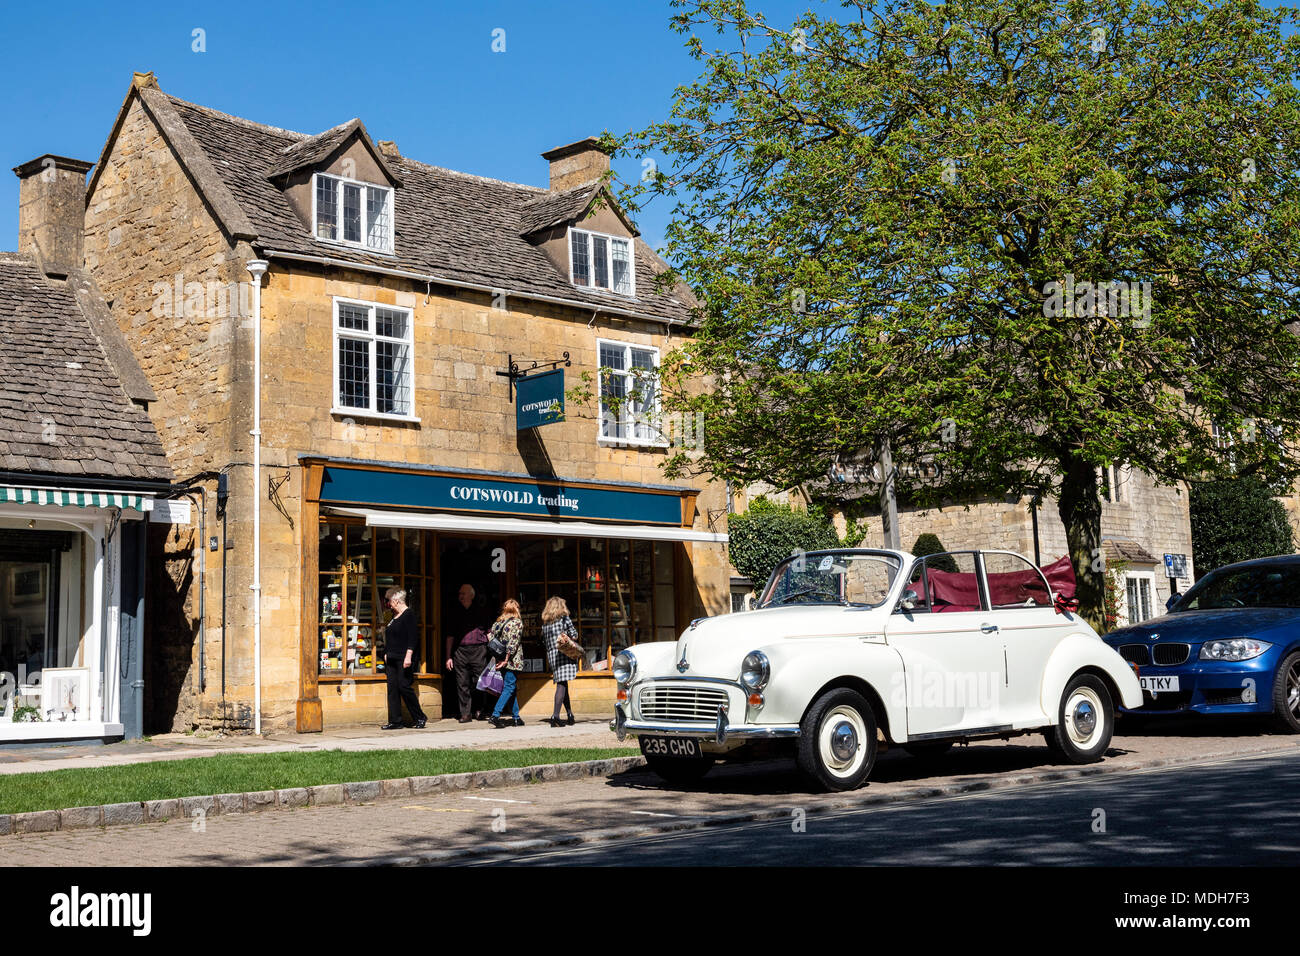 Morris minor convertible parked on the High Street, Broadway, Cotswolds on a sunny spring day with blue skies. - Stock Image